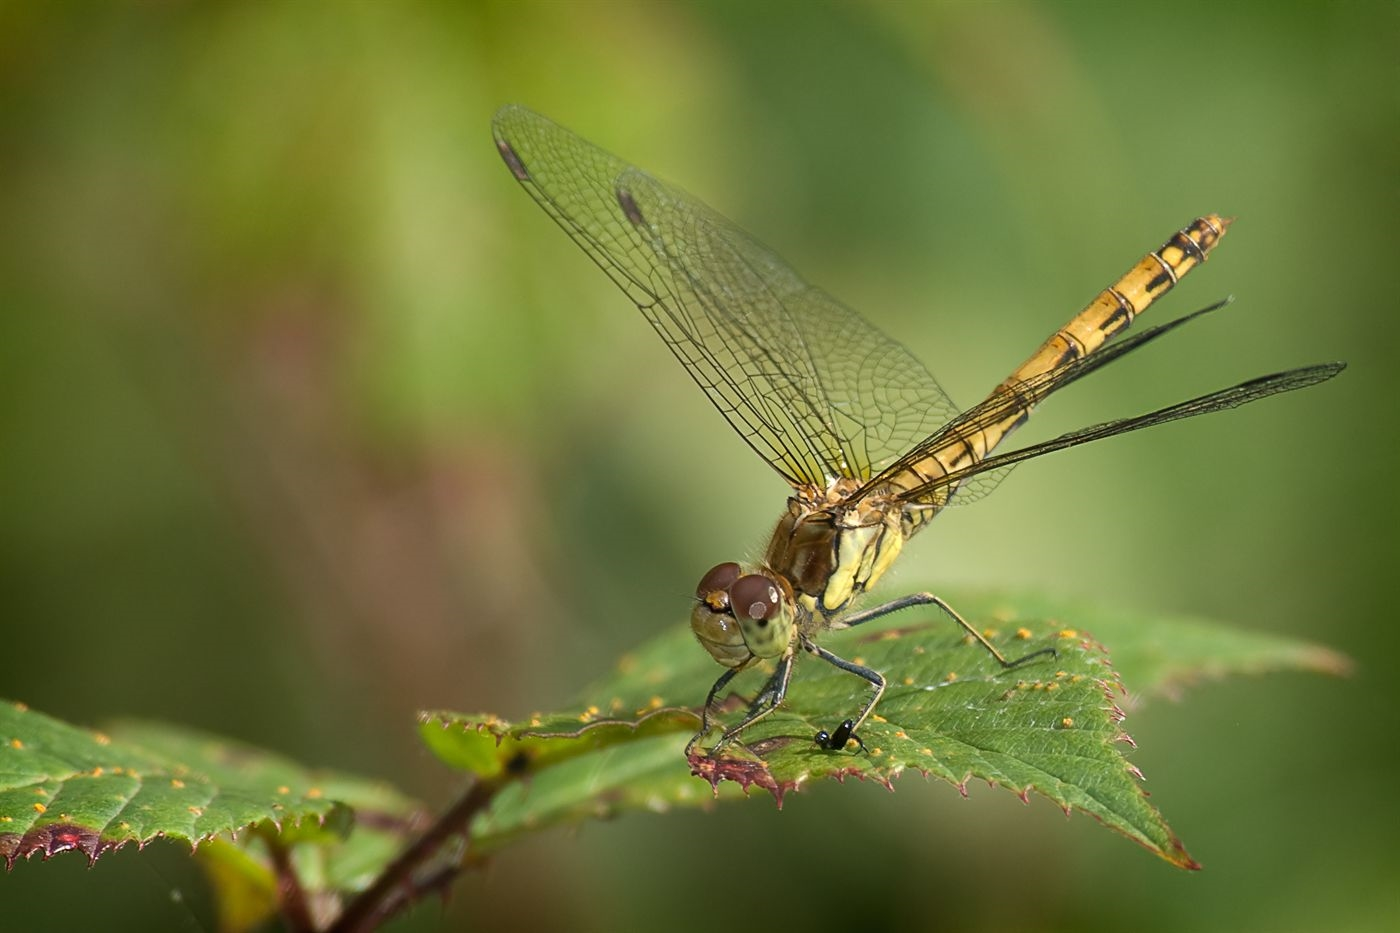 Sympetrum striolatum (Common Darter) female by Steffan Nicholson